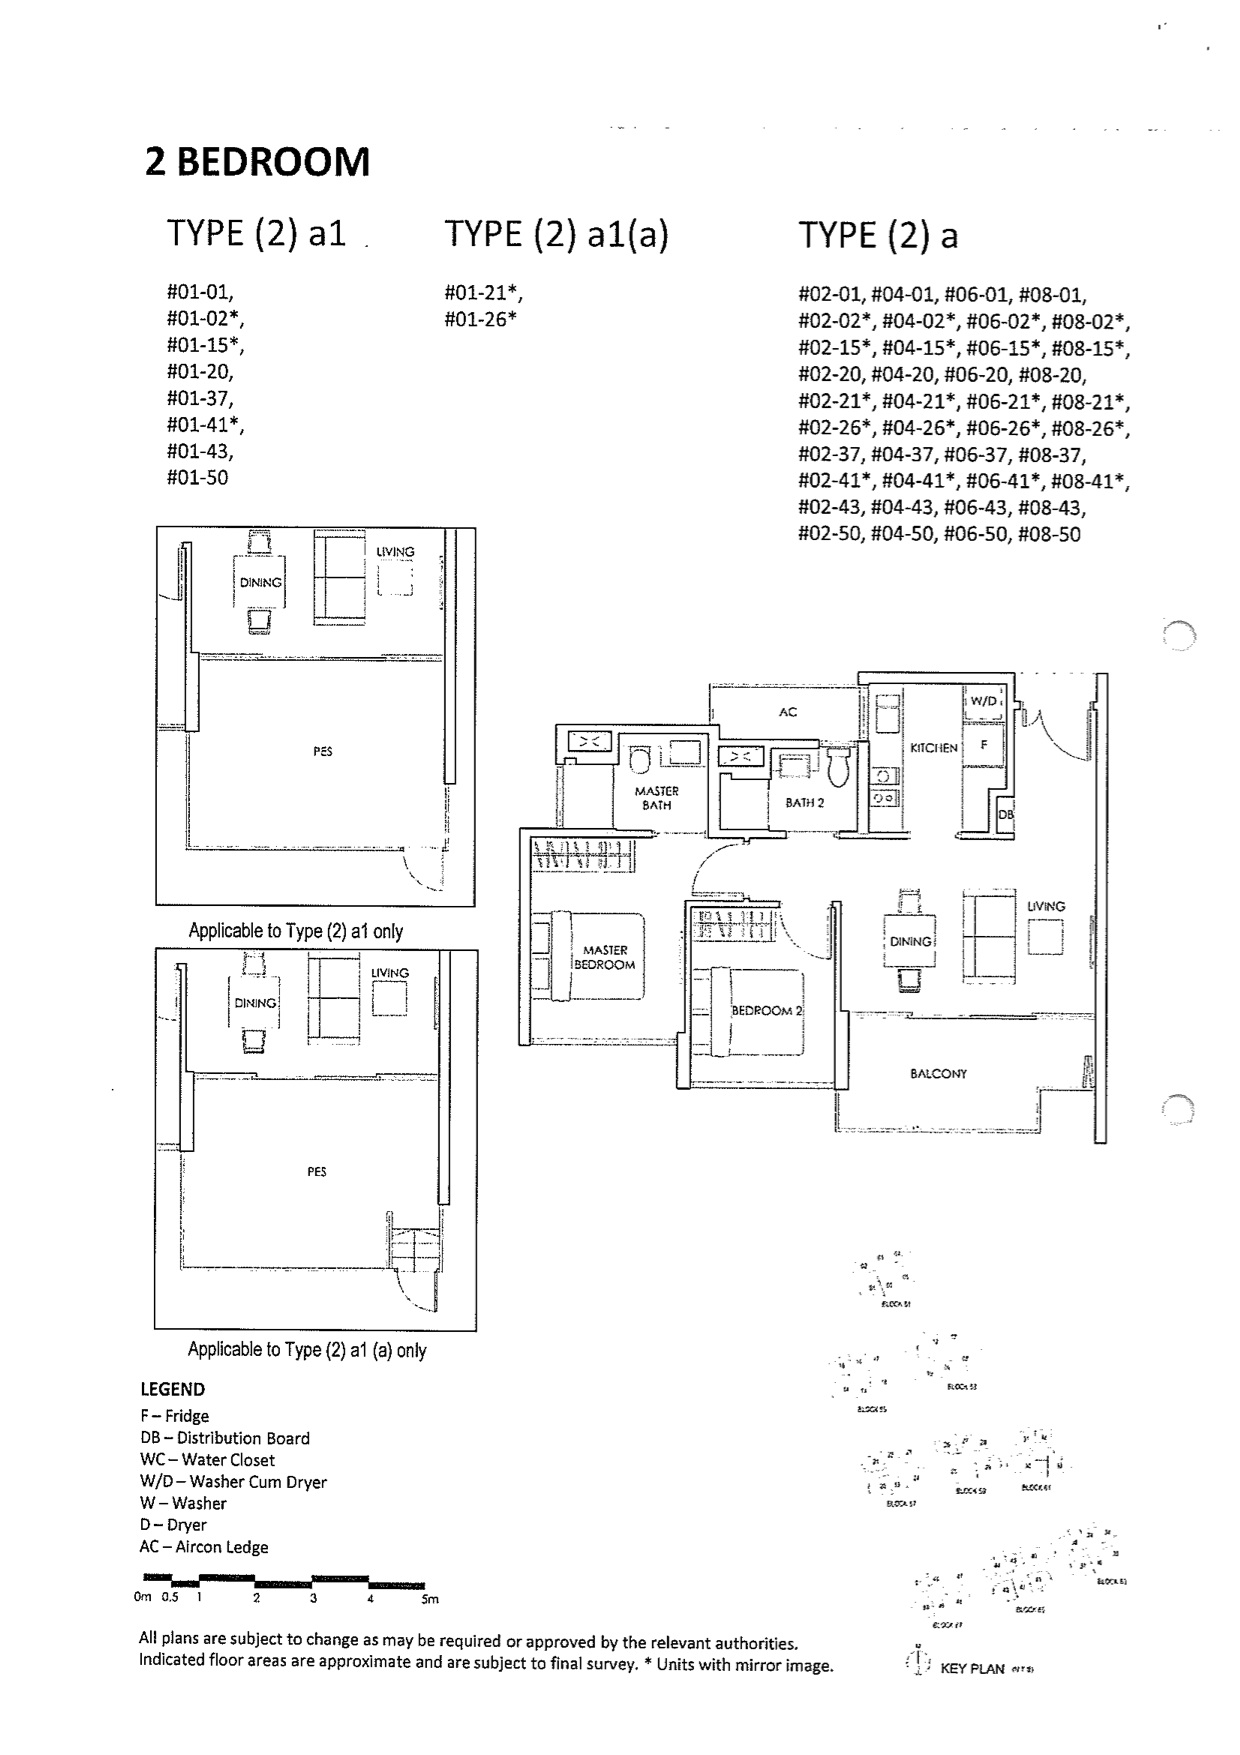 The Inflora Condo Floor Plan 2 Bedroom